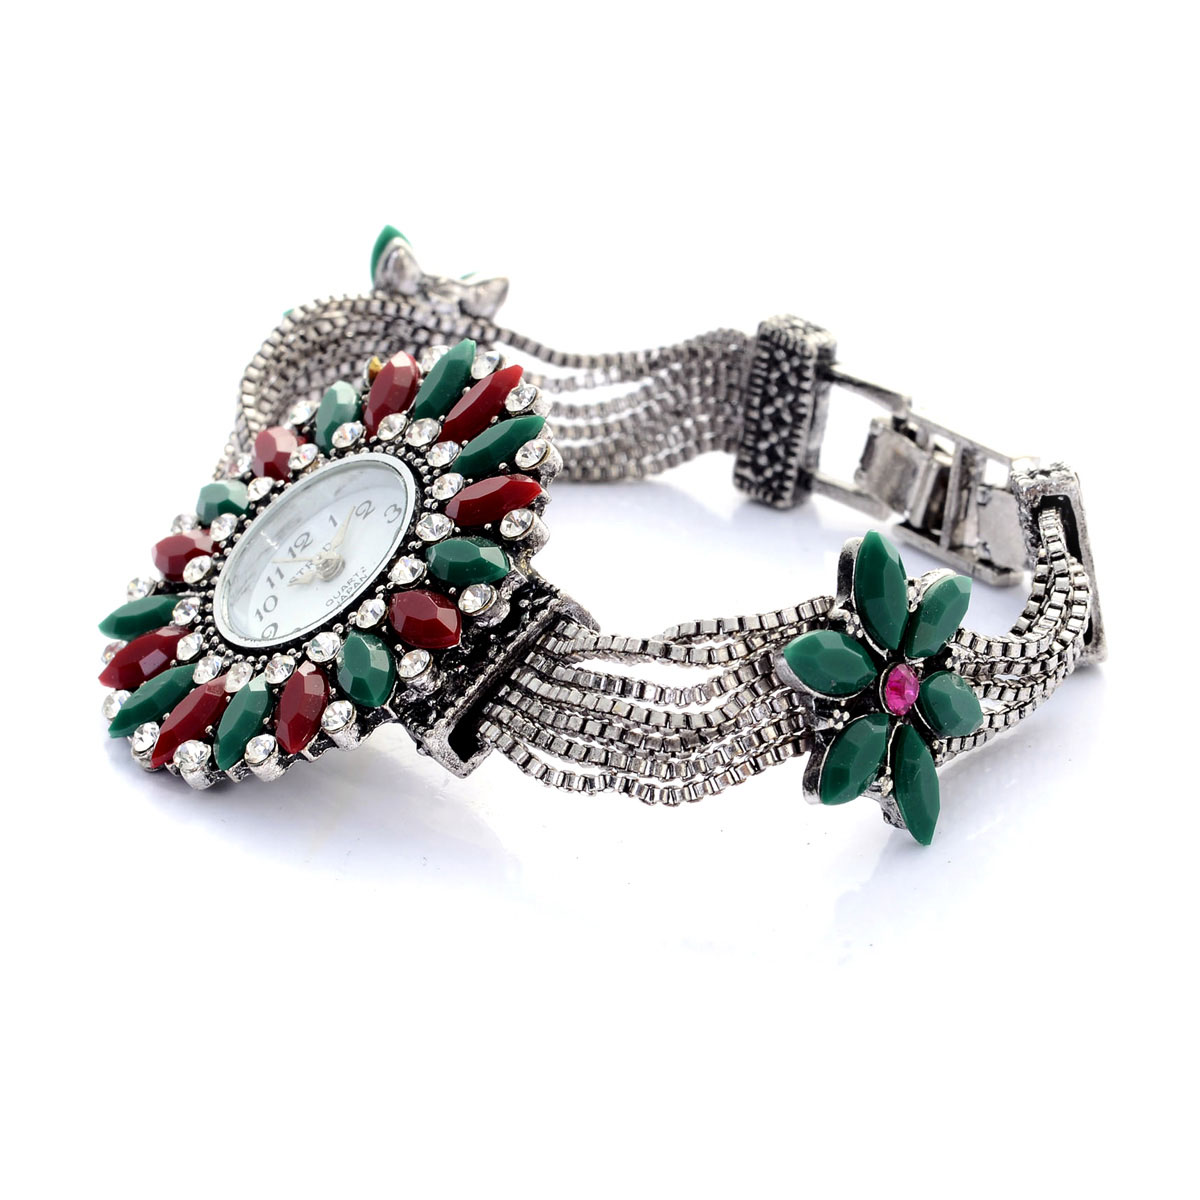 STRADA Austrian Crystal, Red and Green Chroma Japanese Movement Bracelet Watch in Silvertone with Stainless Steel Back